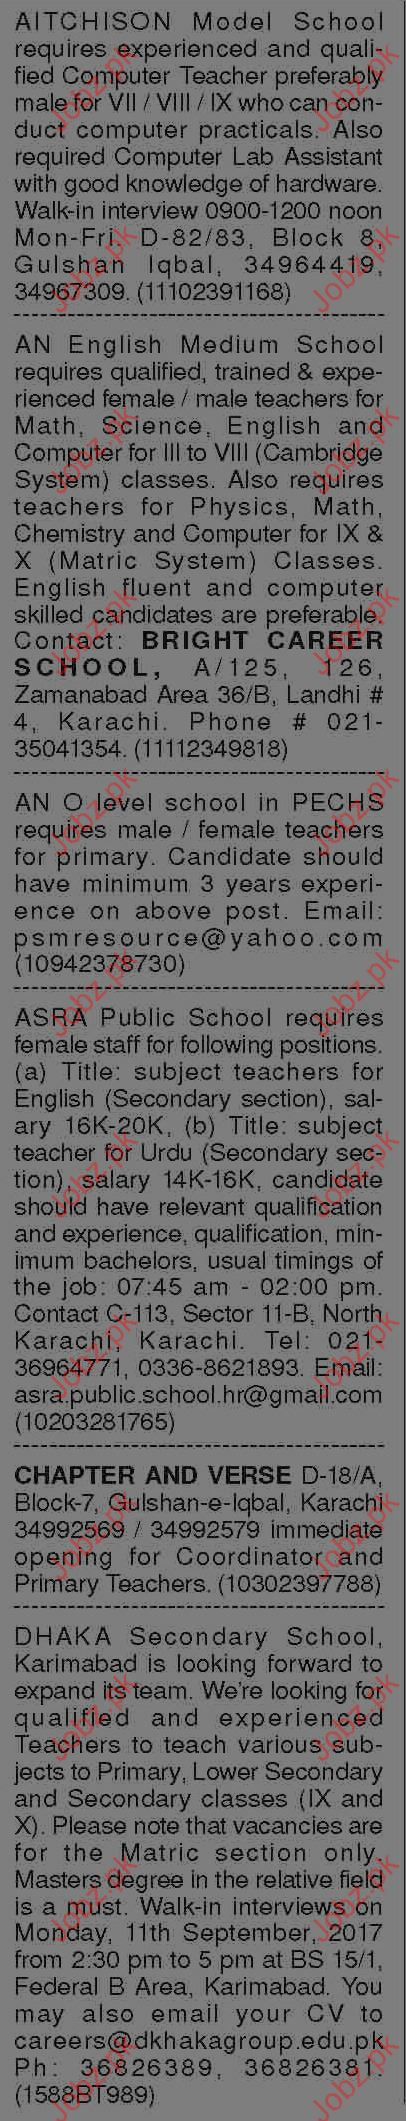 Teachers Wanted By Aitchison Model School, Bright Career